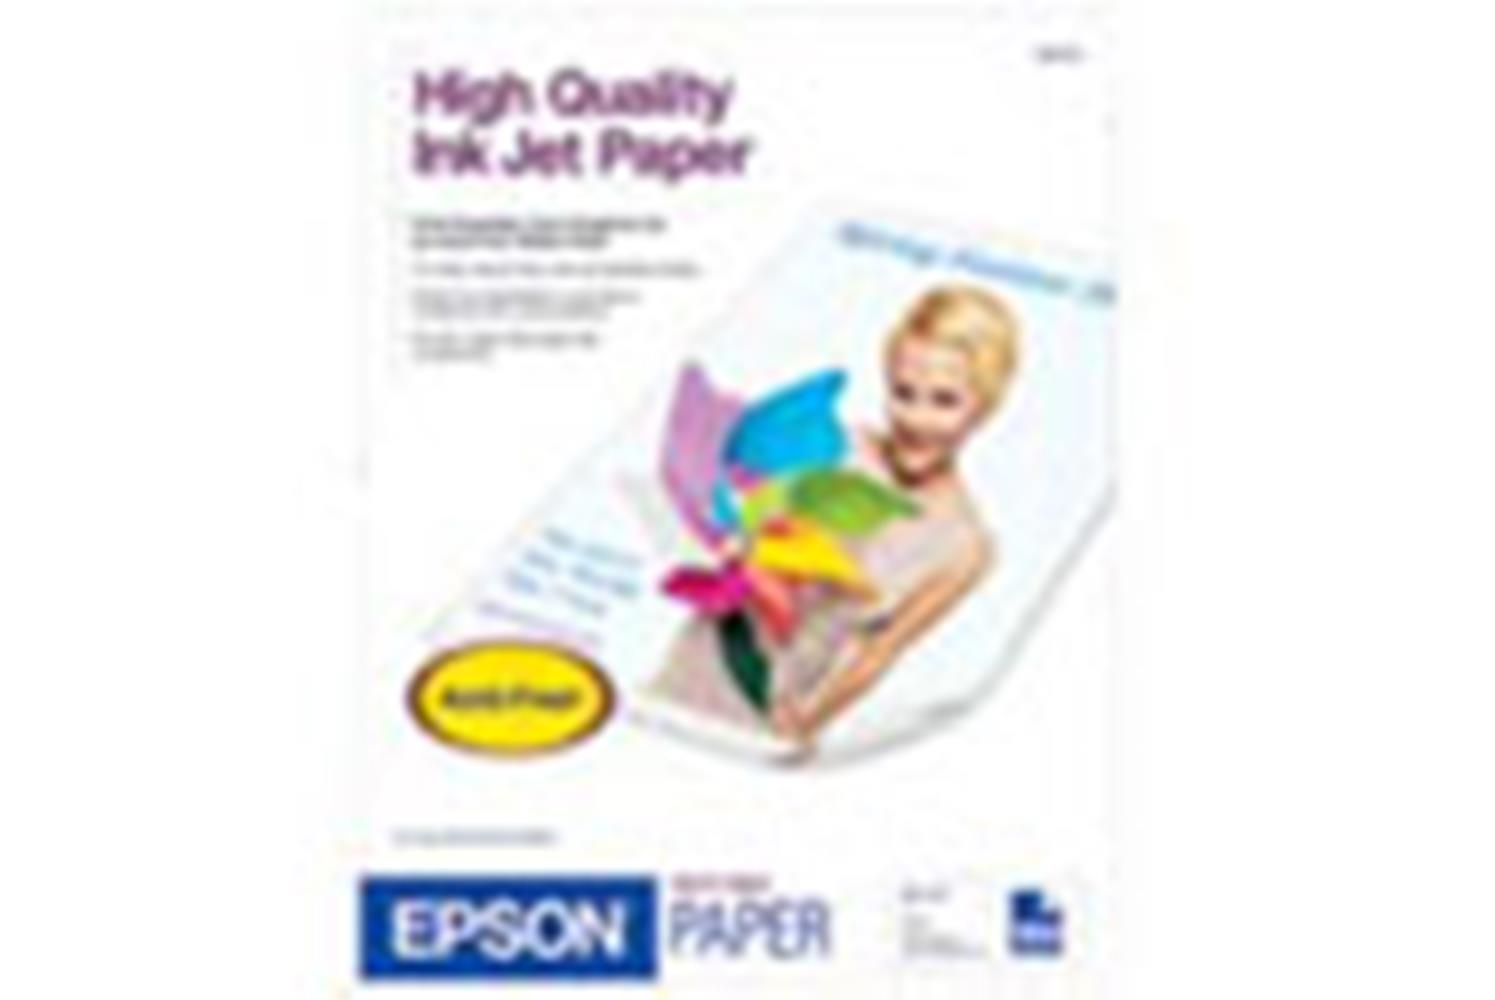 EPSON HIGH QUALITY PAPER 8.5X11 100STS